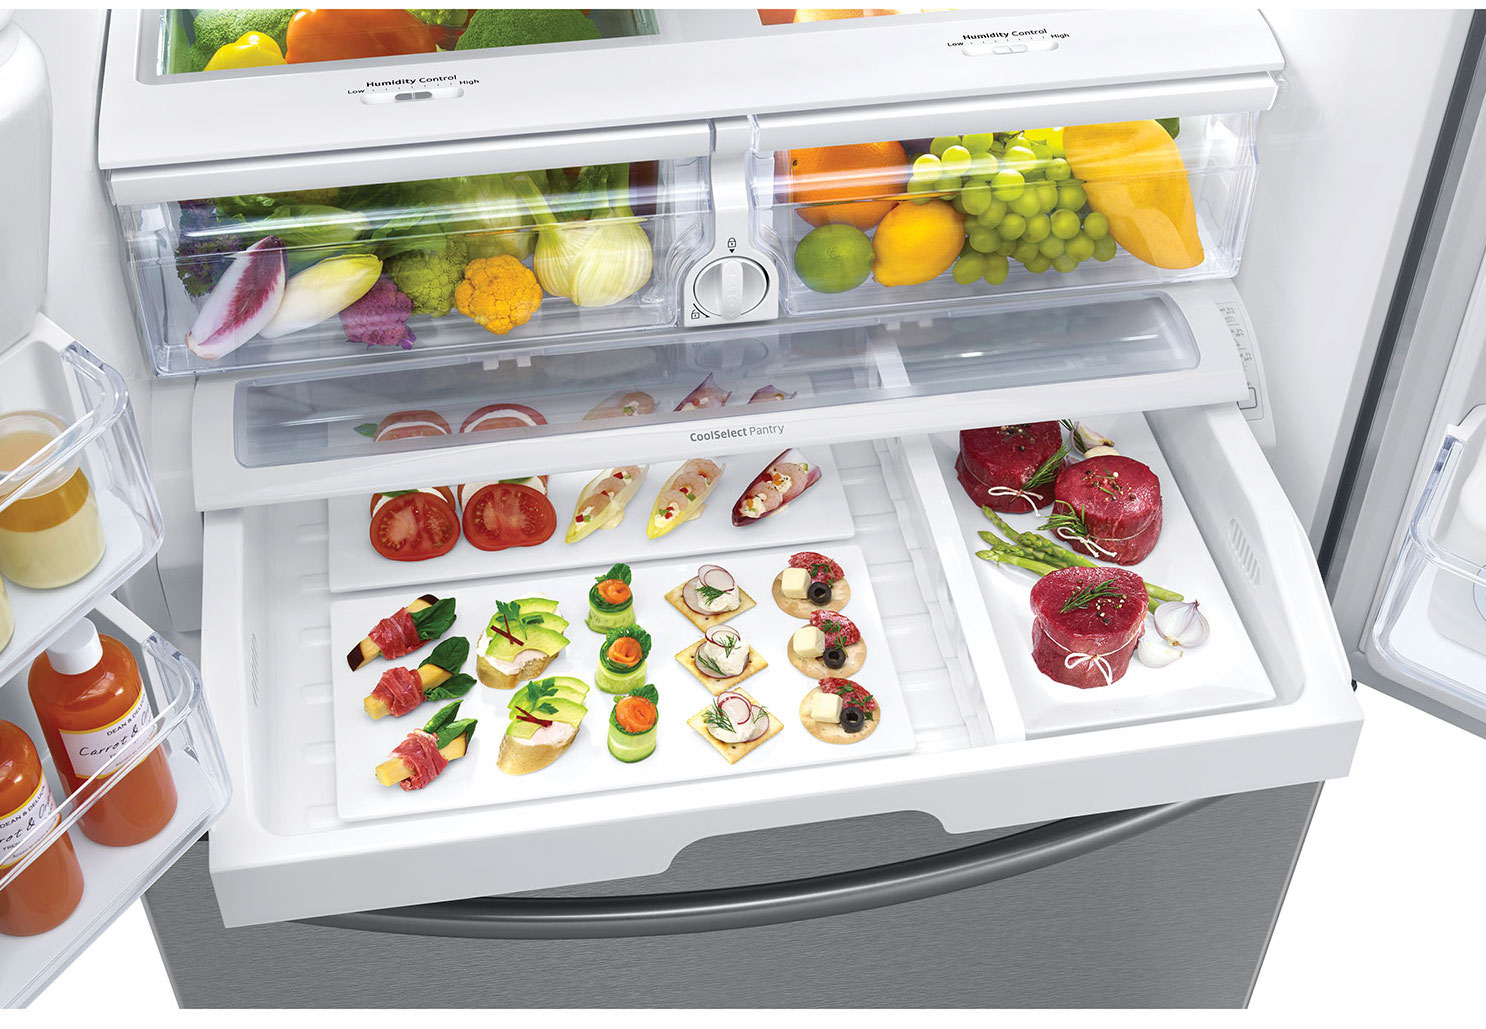 What temperature should your fridge and freezer be? | Best